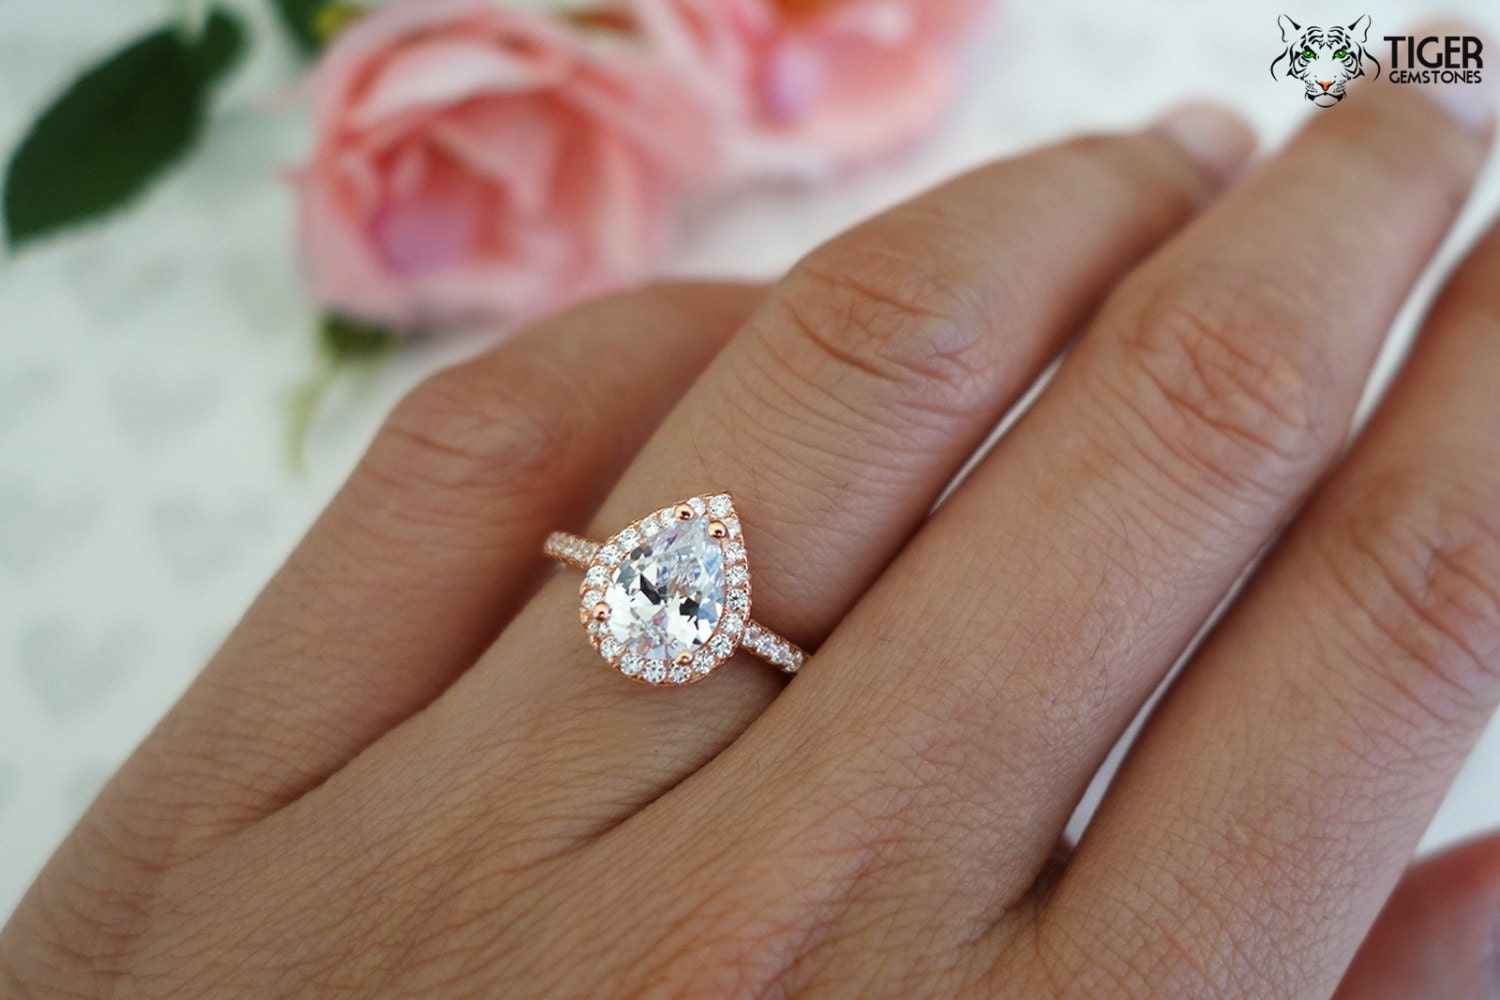 1 5 Carat Pear Cut Halo Engagement Ring Flawless By TigerGemstones